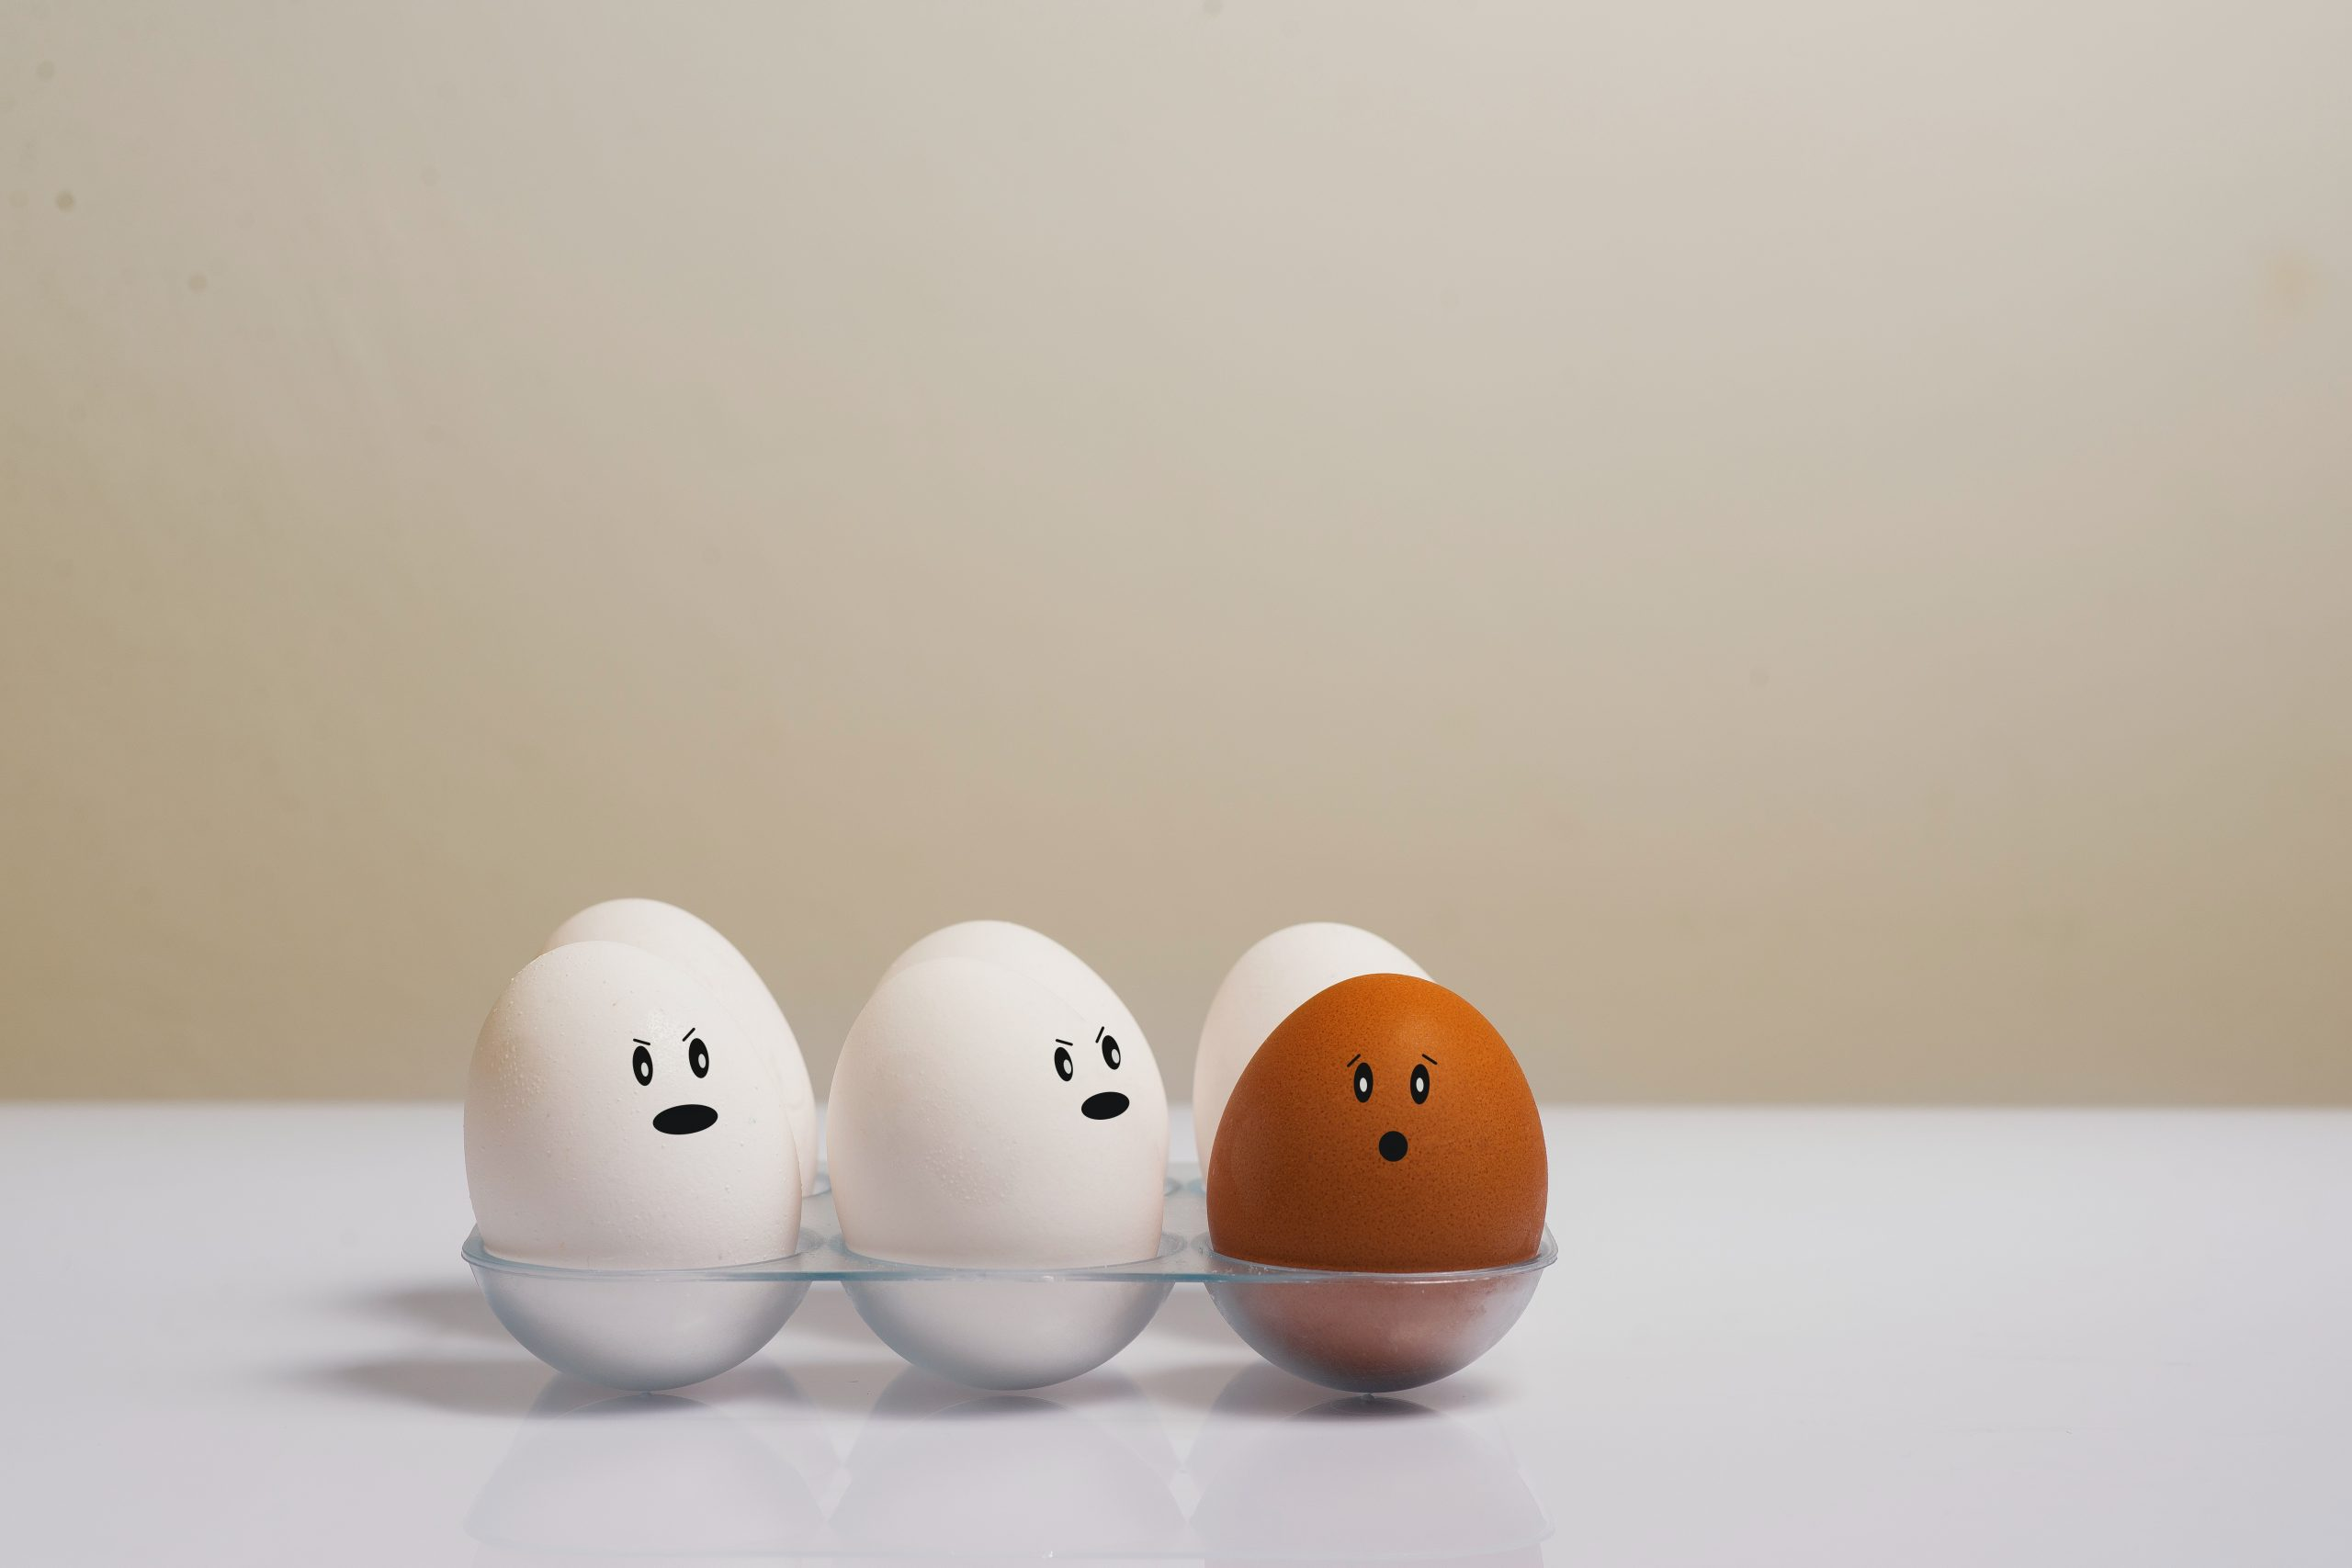 5 white eggs stare at a brown egg discriminatorily | Female Employment Discrimination Attorneys for Women in California | Her Lawyer